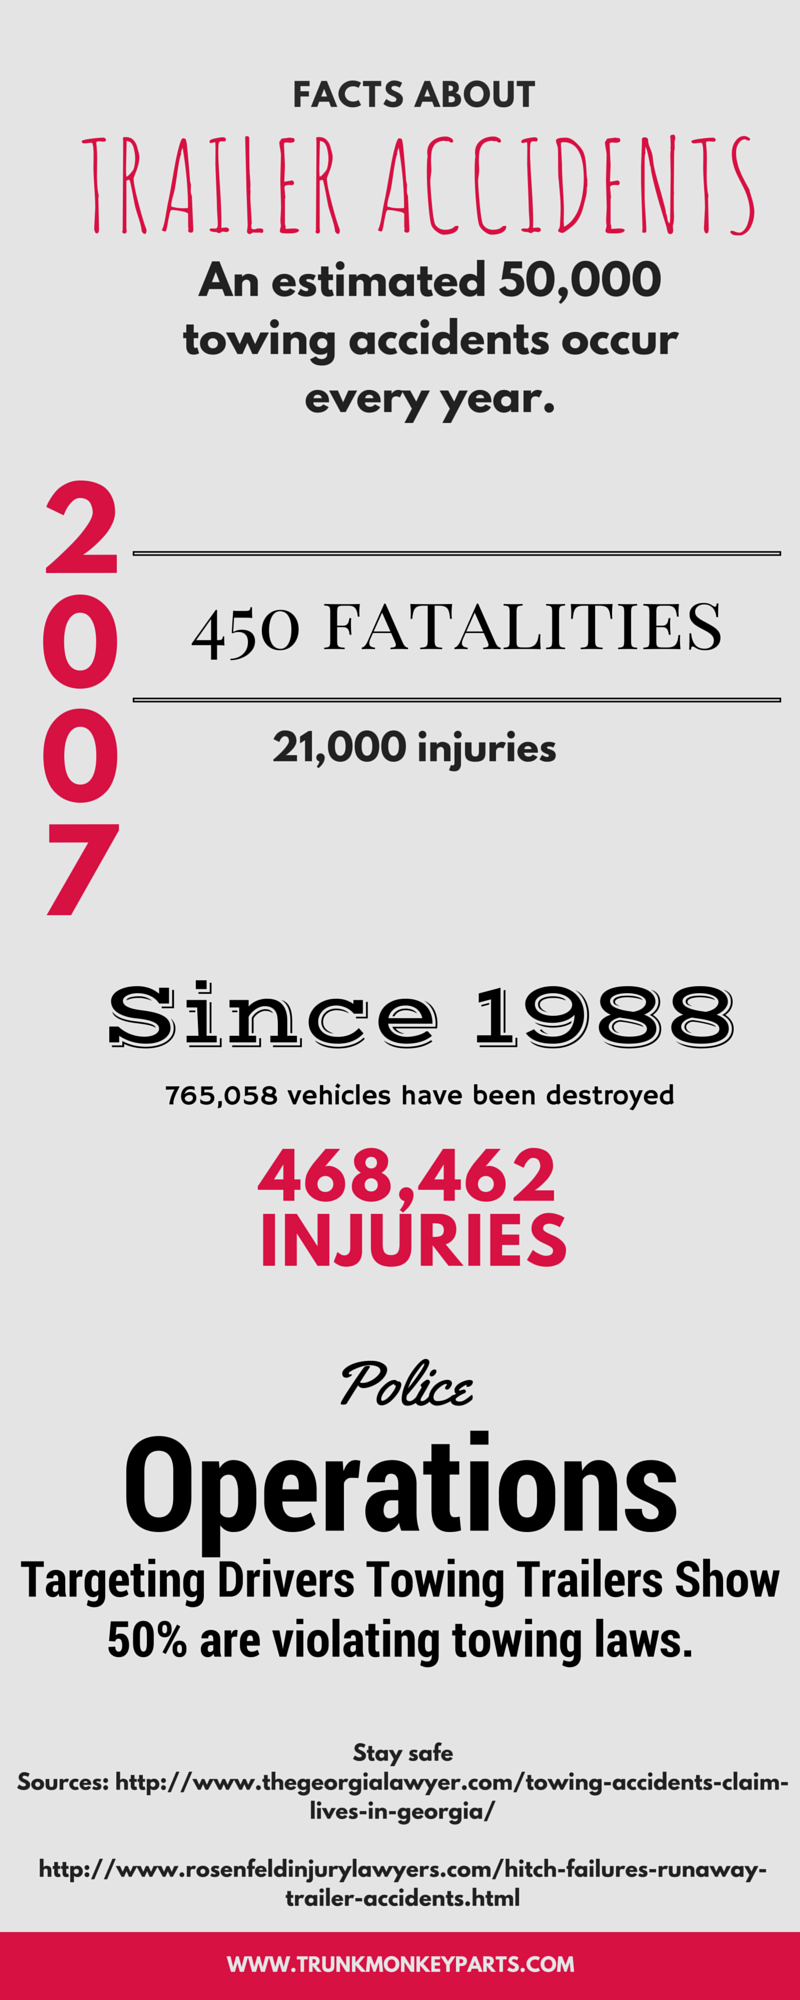 Facts about Trailer Accidents - Infographic